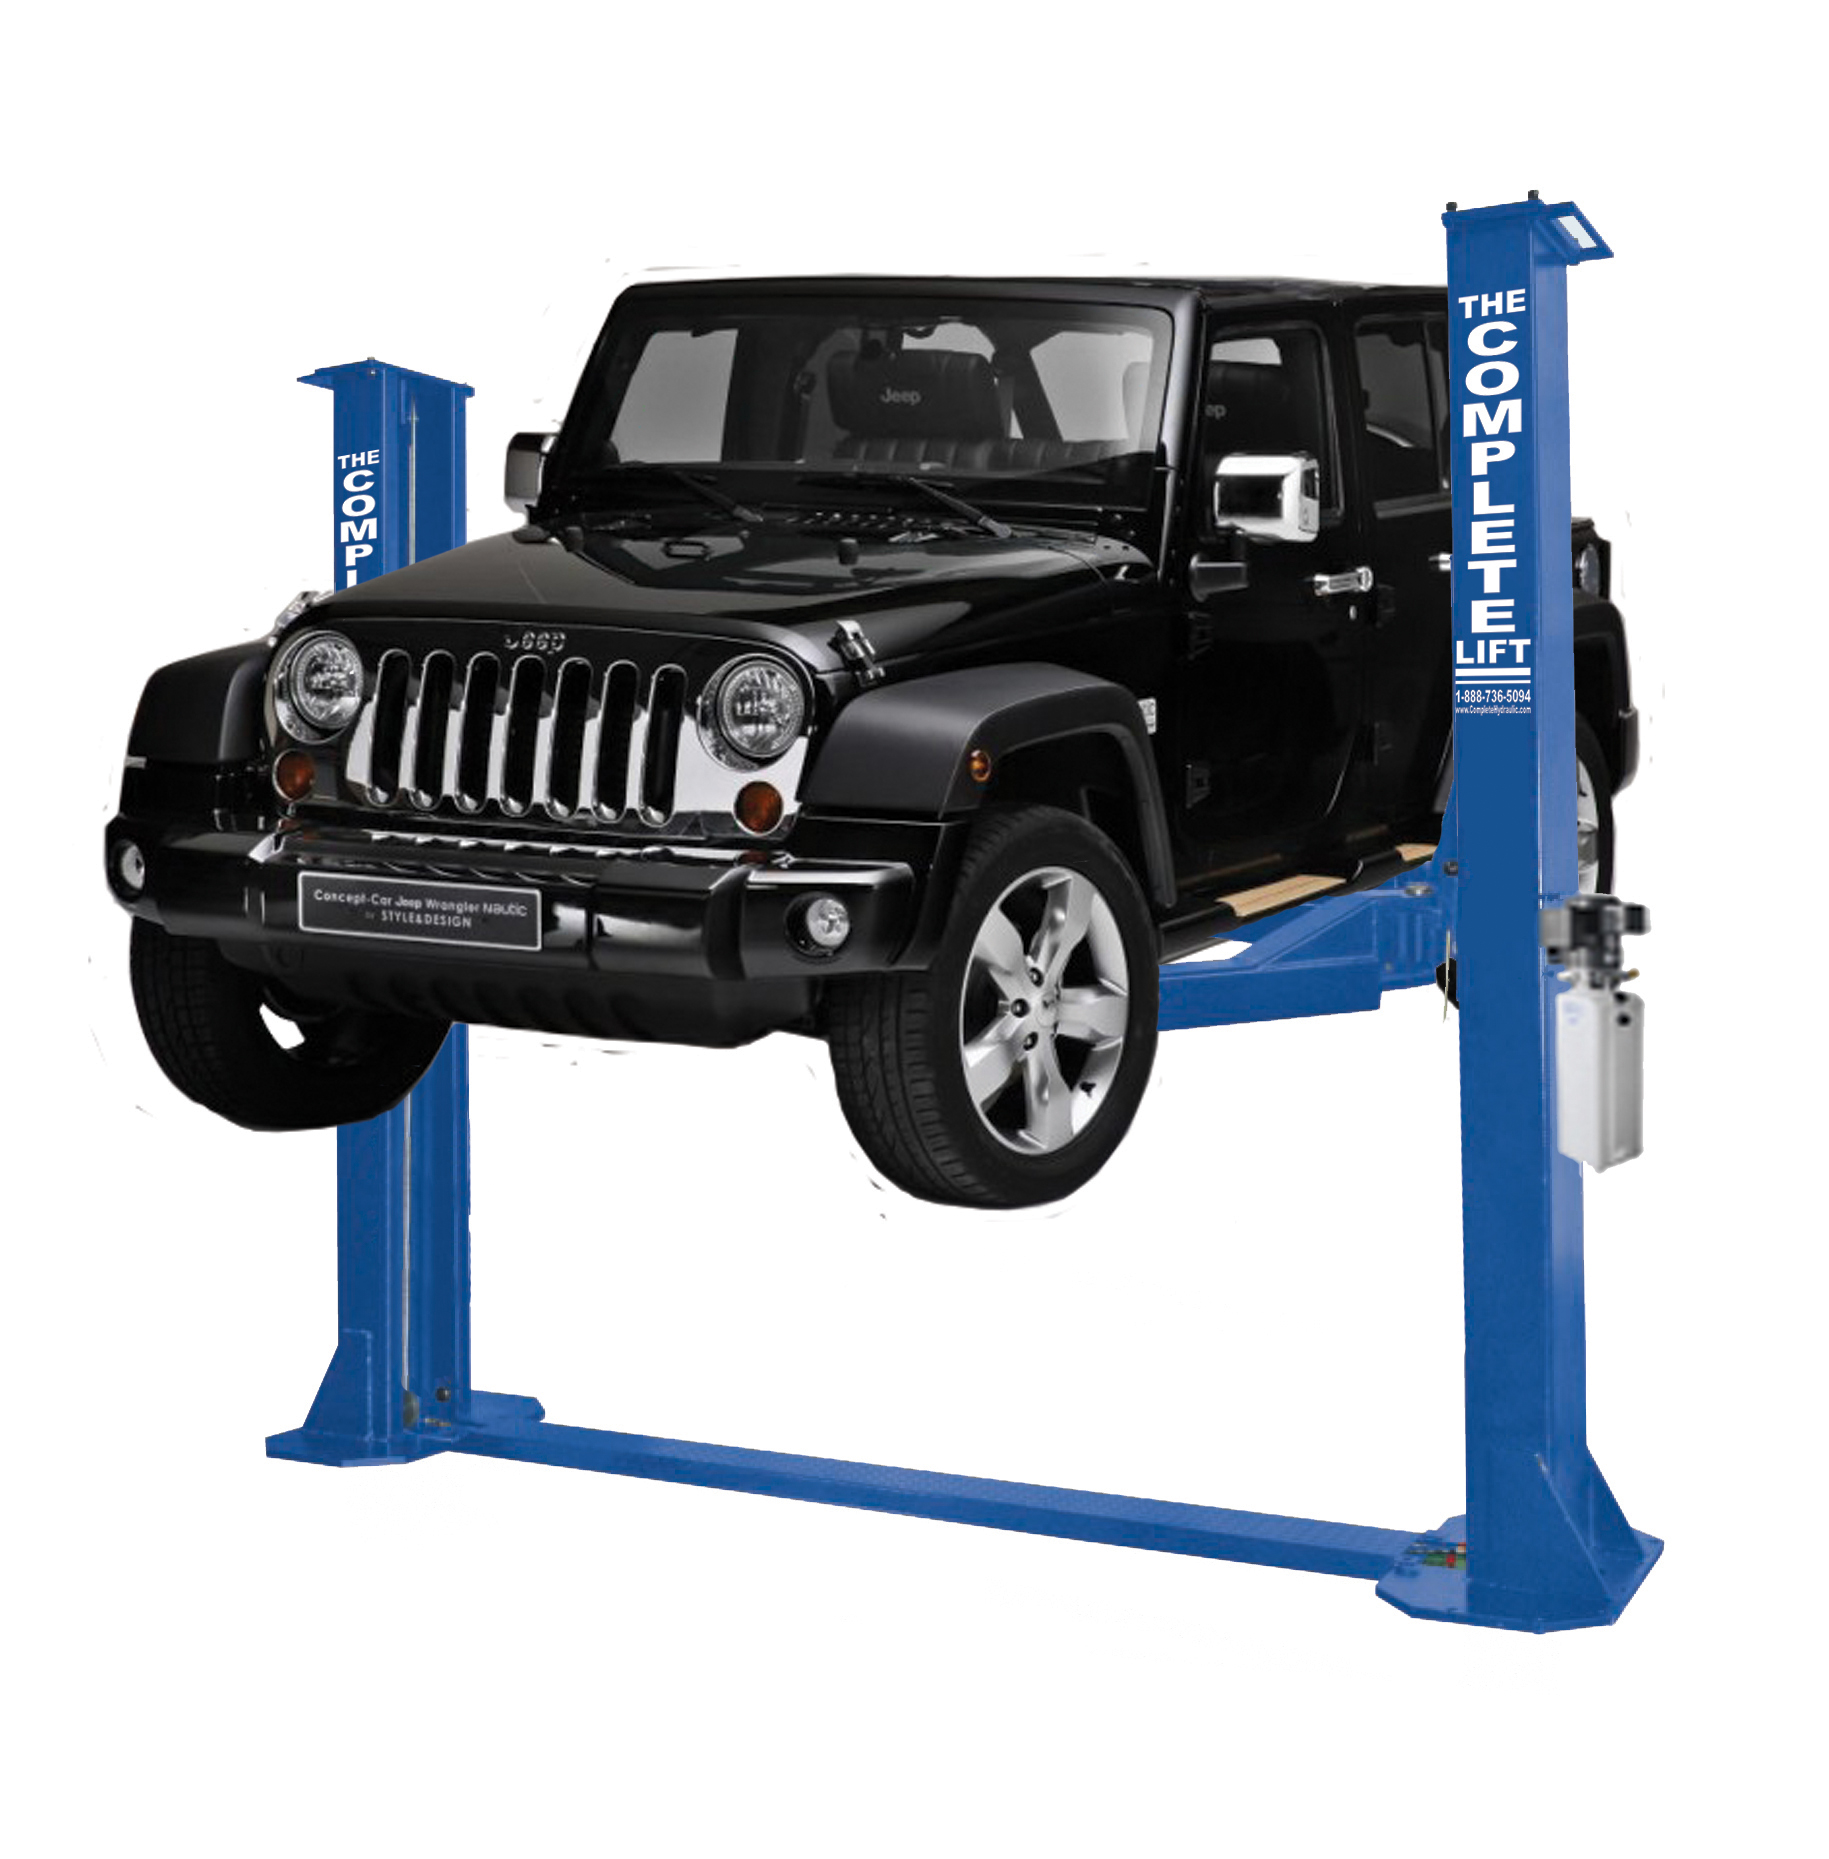 hight resolution of  clt clt 12 000 bp heavy duty 2 post lift